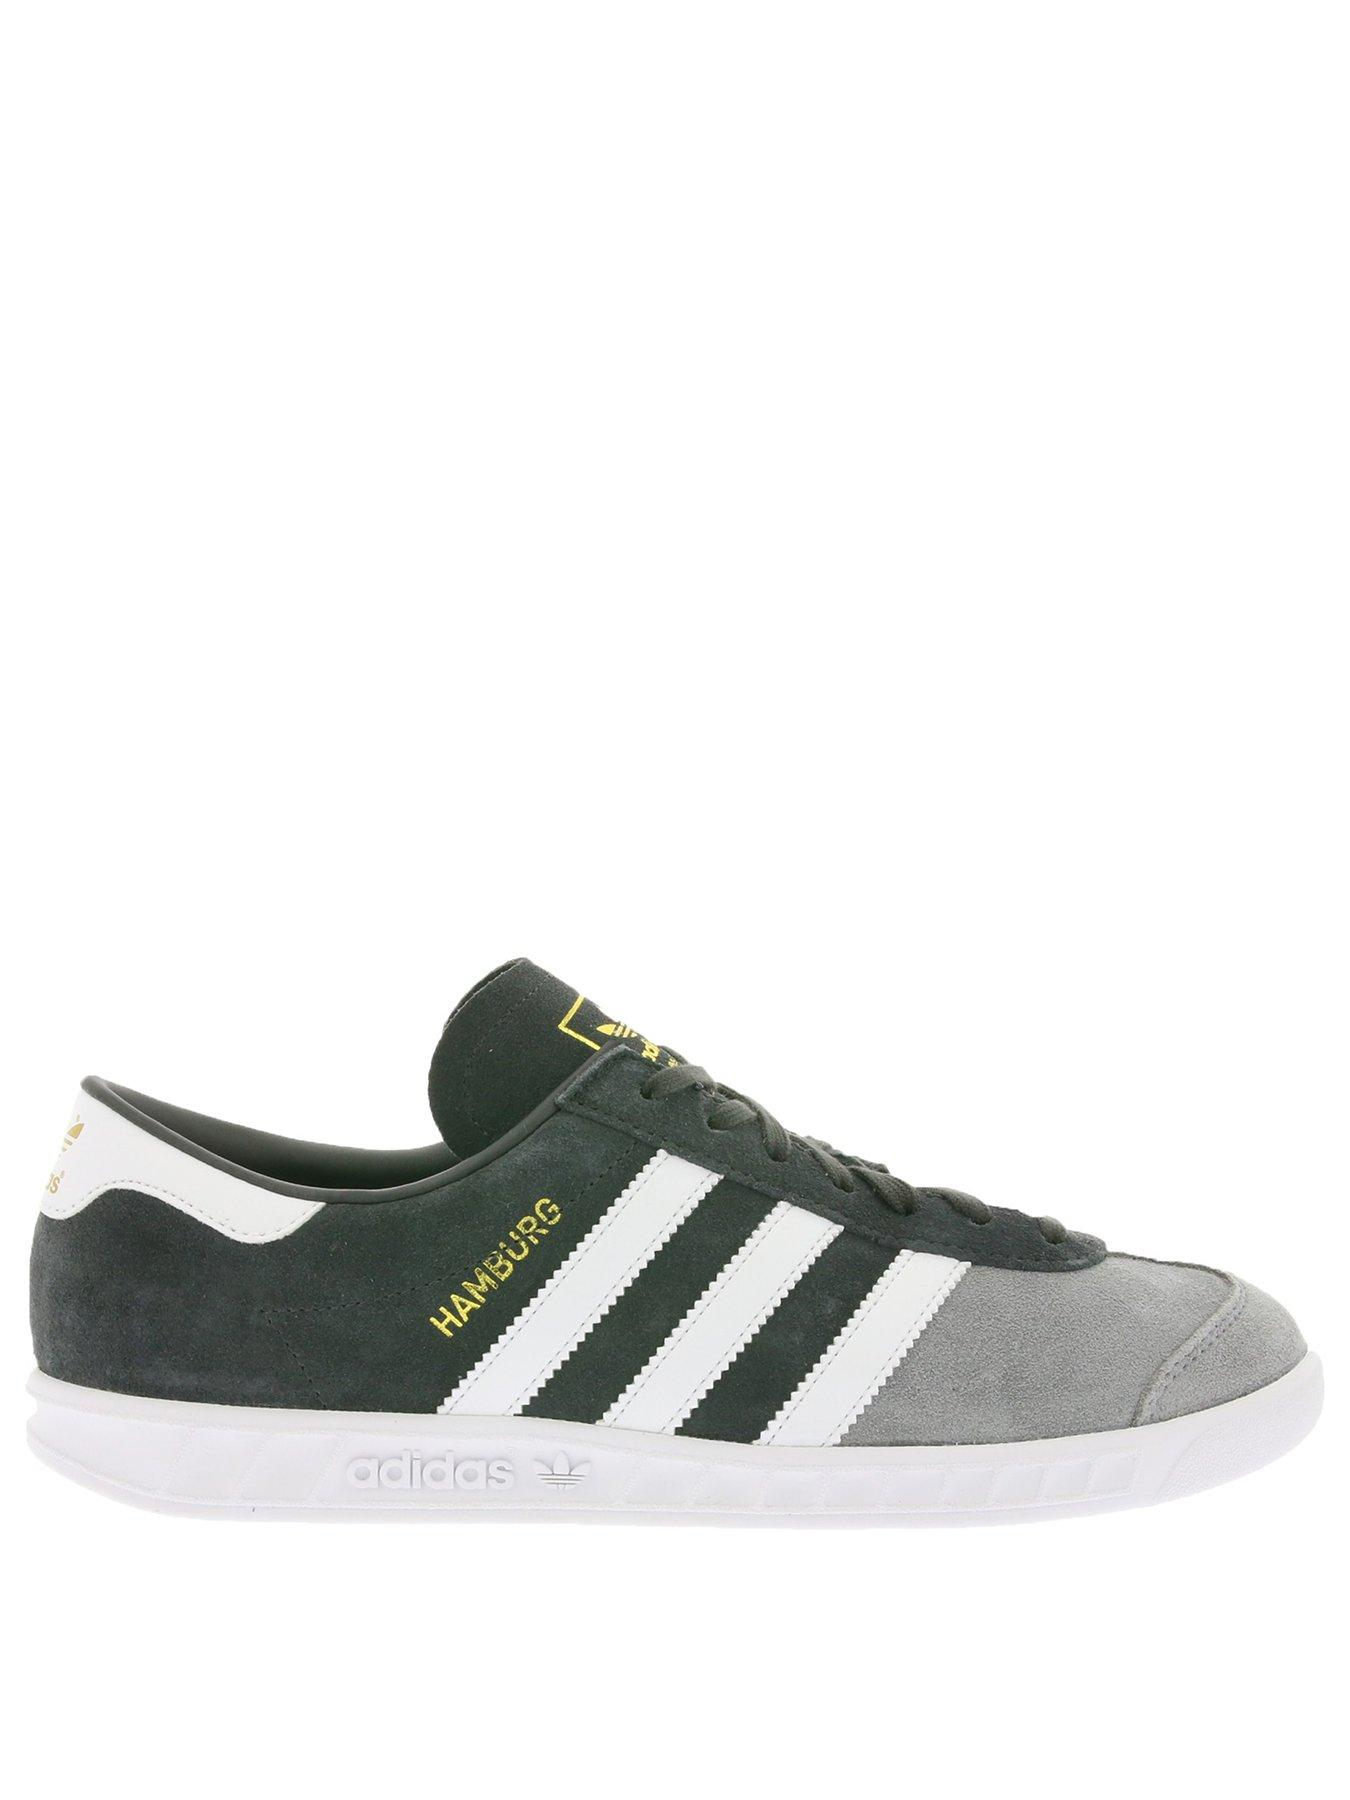 adidas online store europe